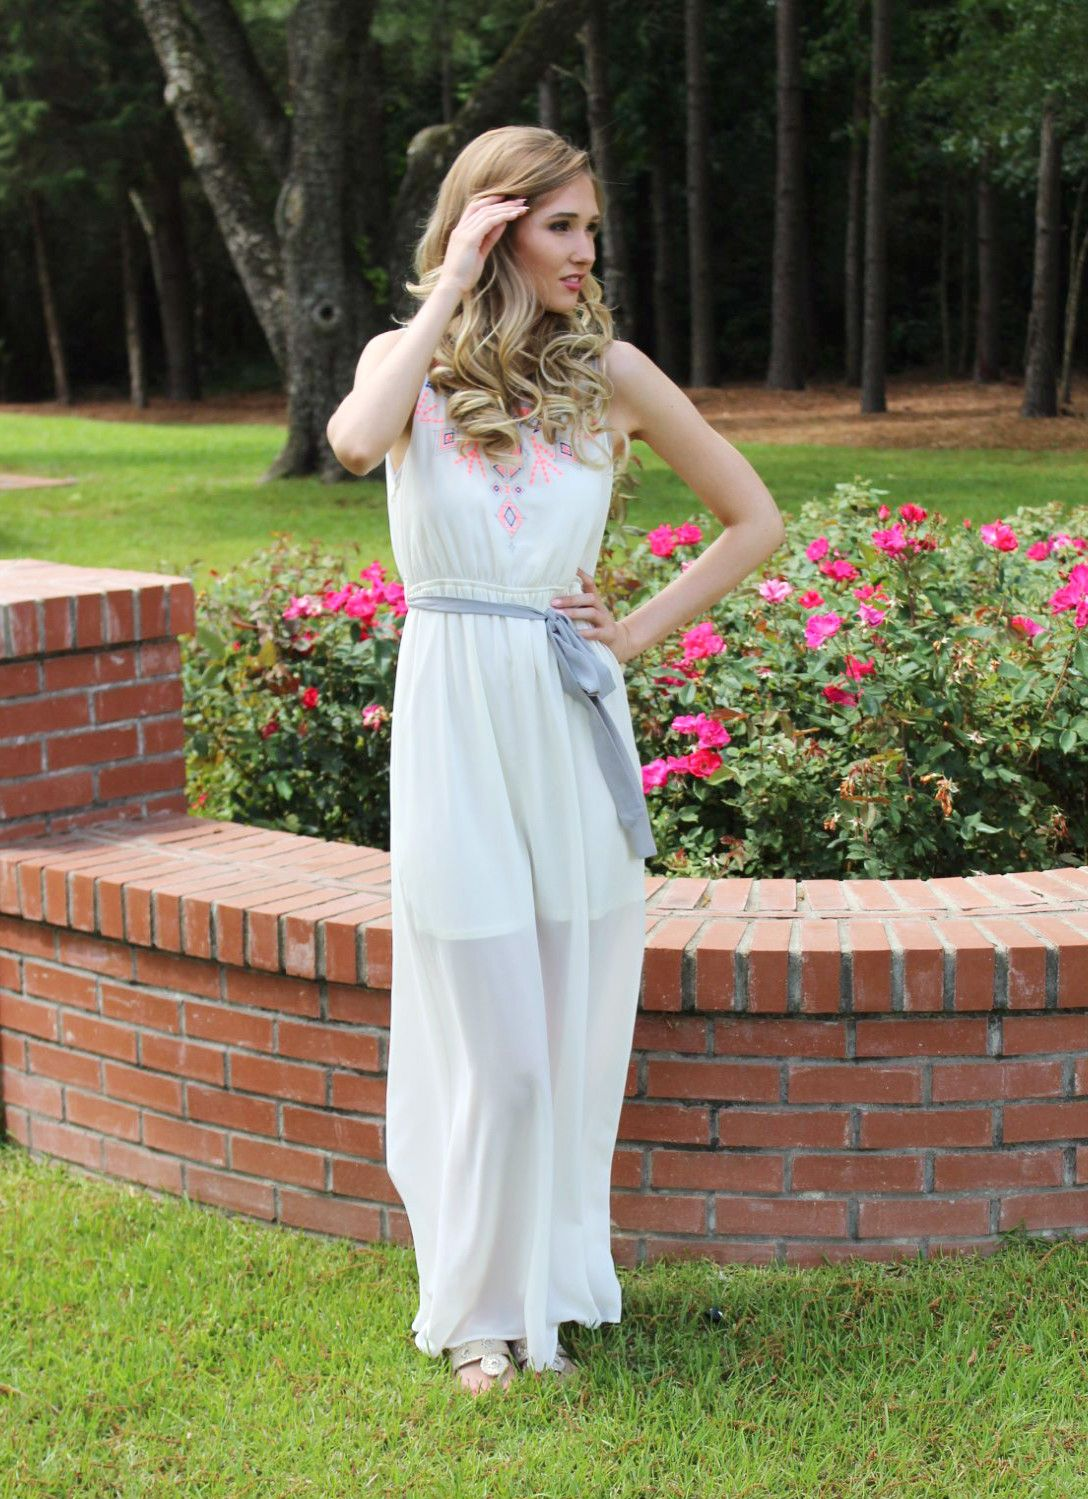 These new maxi dresses are the perfect transition from cool summer mornings to hot summer nights, come get yours today!